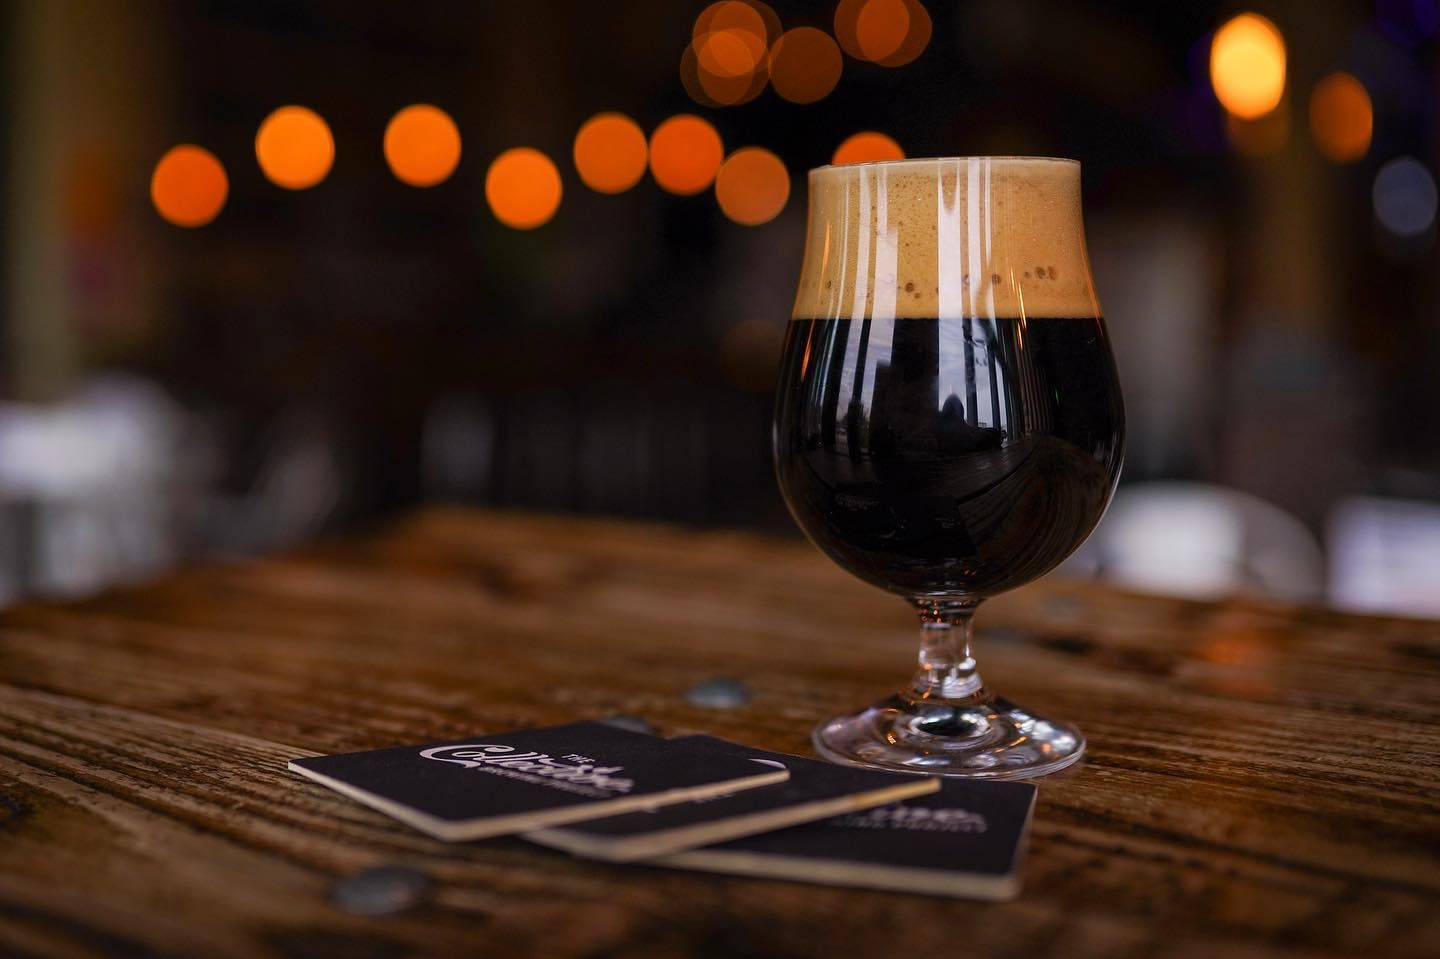 Stout from The Collective Brewing Project on a wooden table with three coasters on it